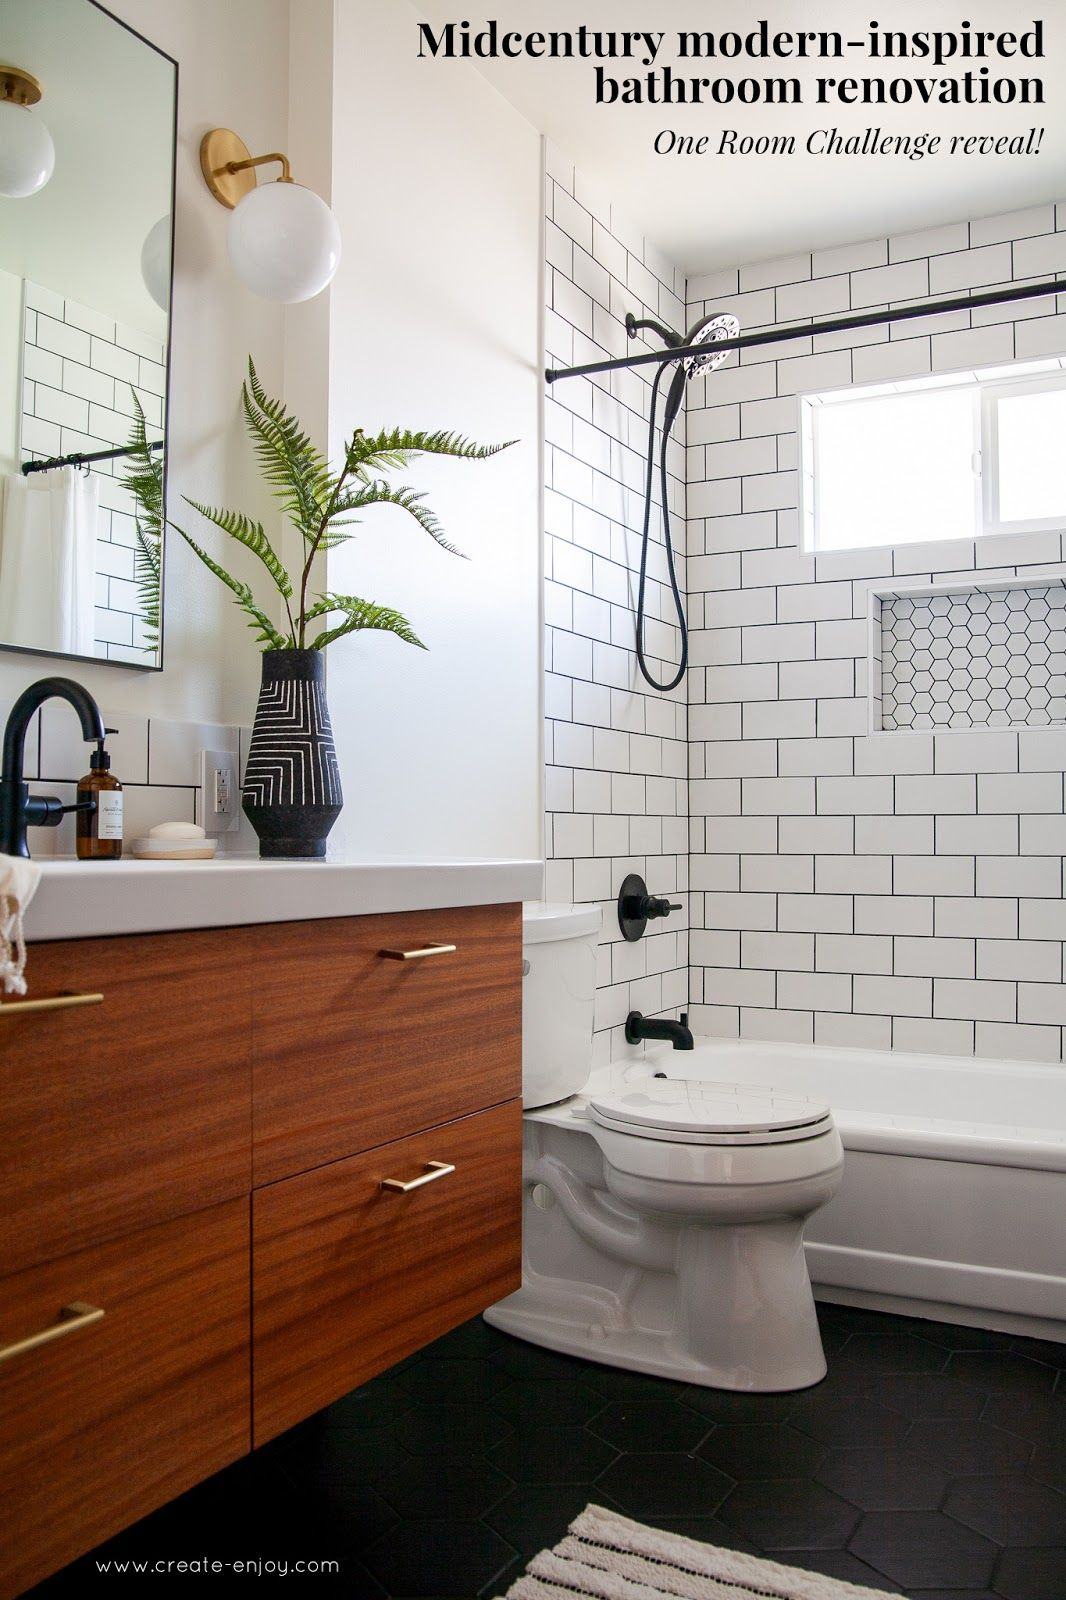 Modern Bathroom Renovation Reveal The Finished One Room Challenge